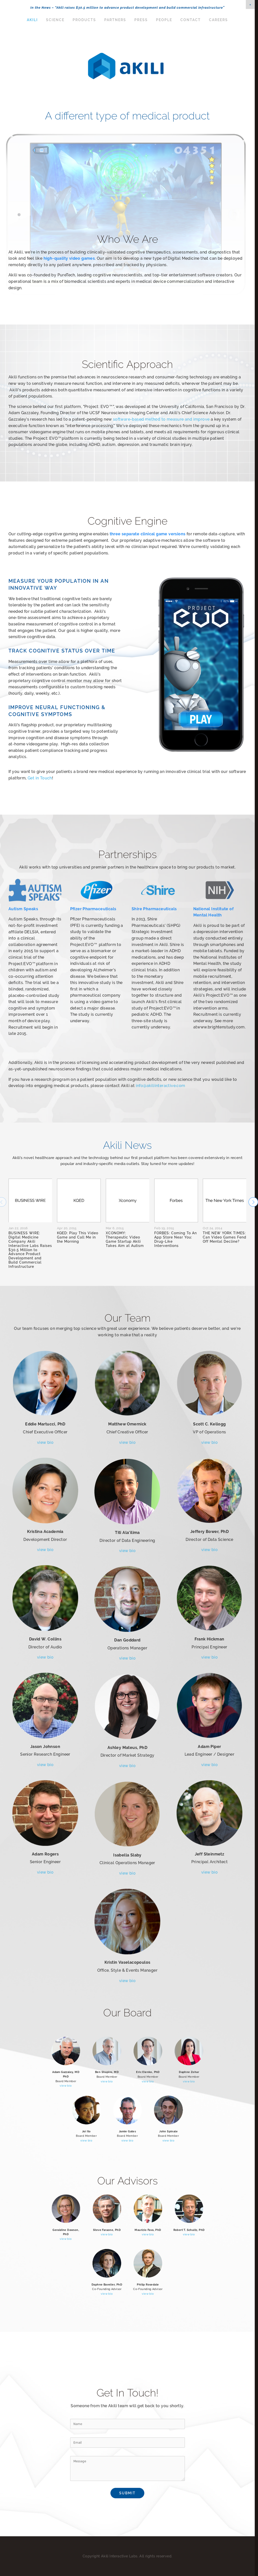 Akili Interactive Labs Competitors, Revenue and Employees